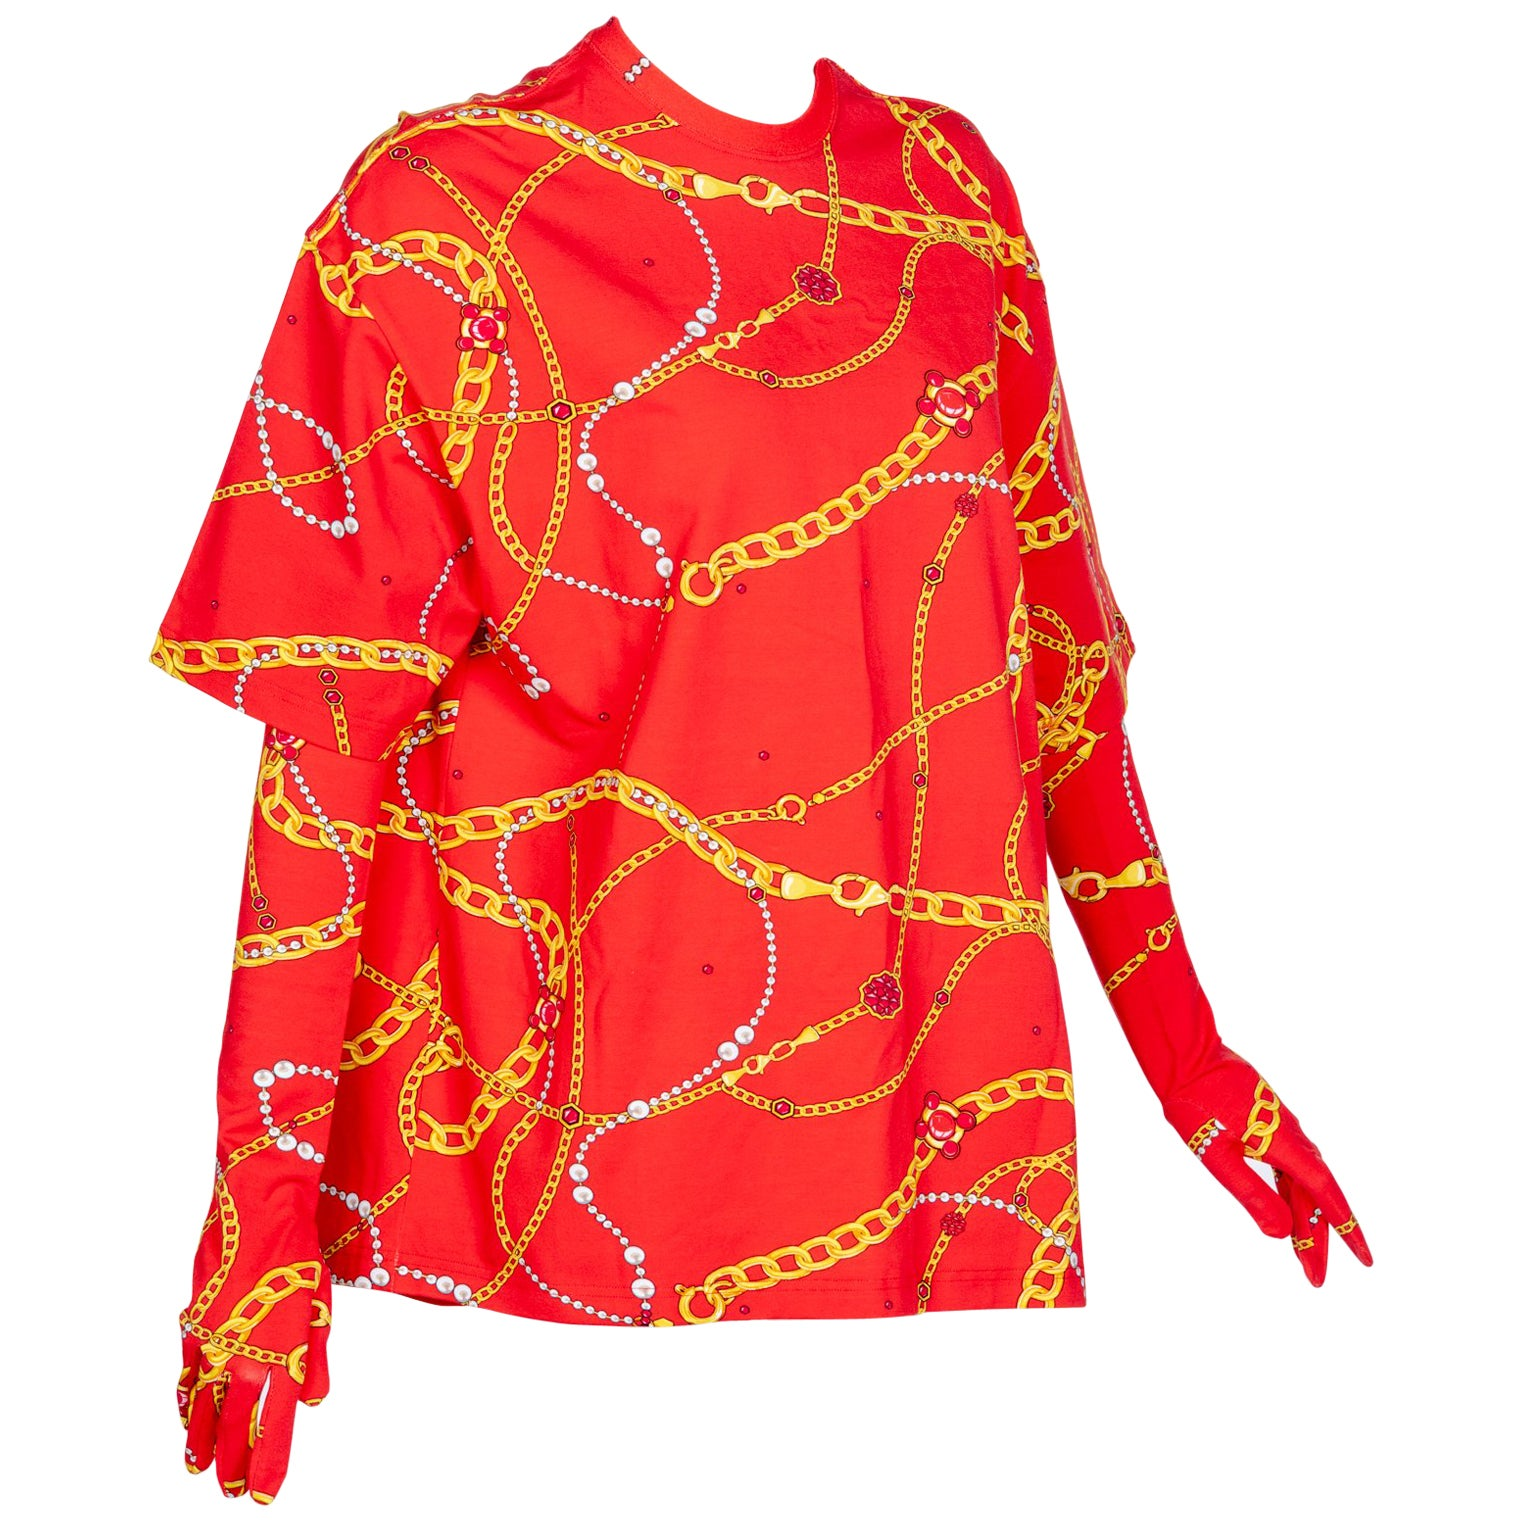 488e76cc9c90 Balenciaga Red Chain Print Shirt and Gloves at 1stdibs